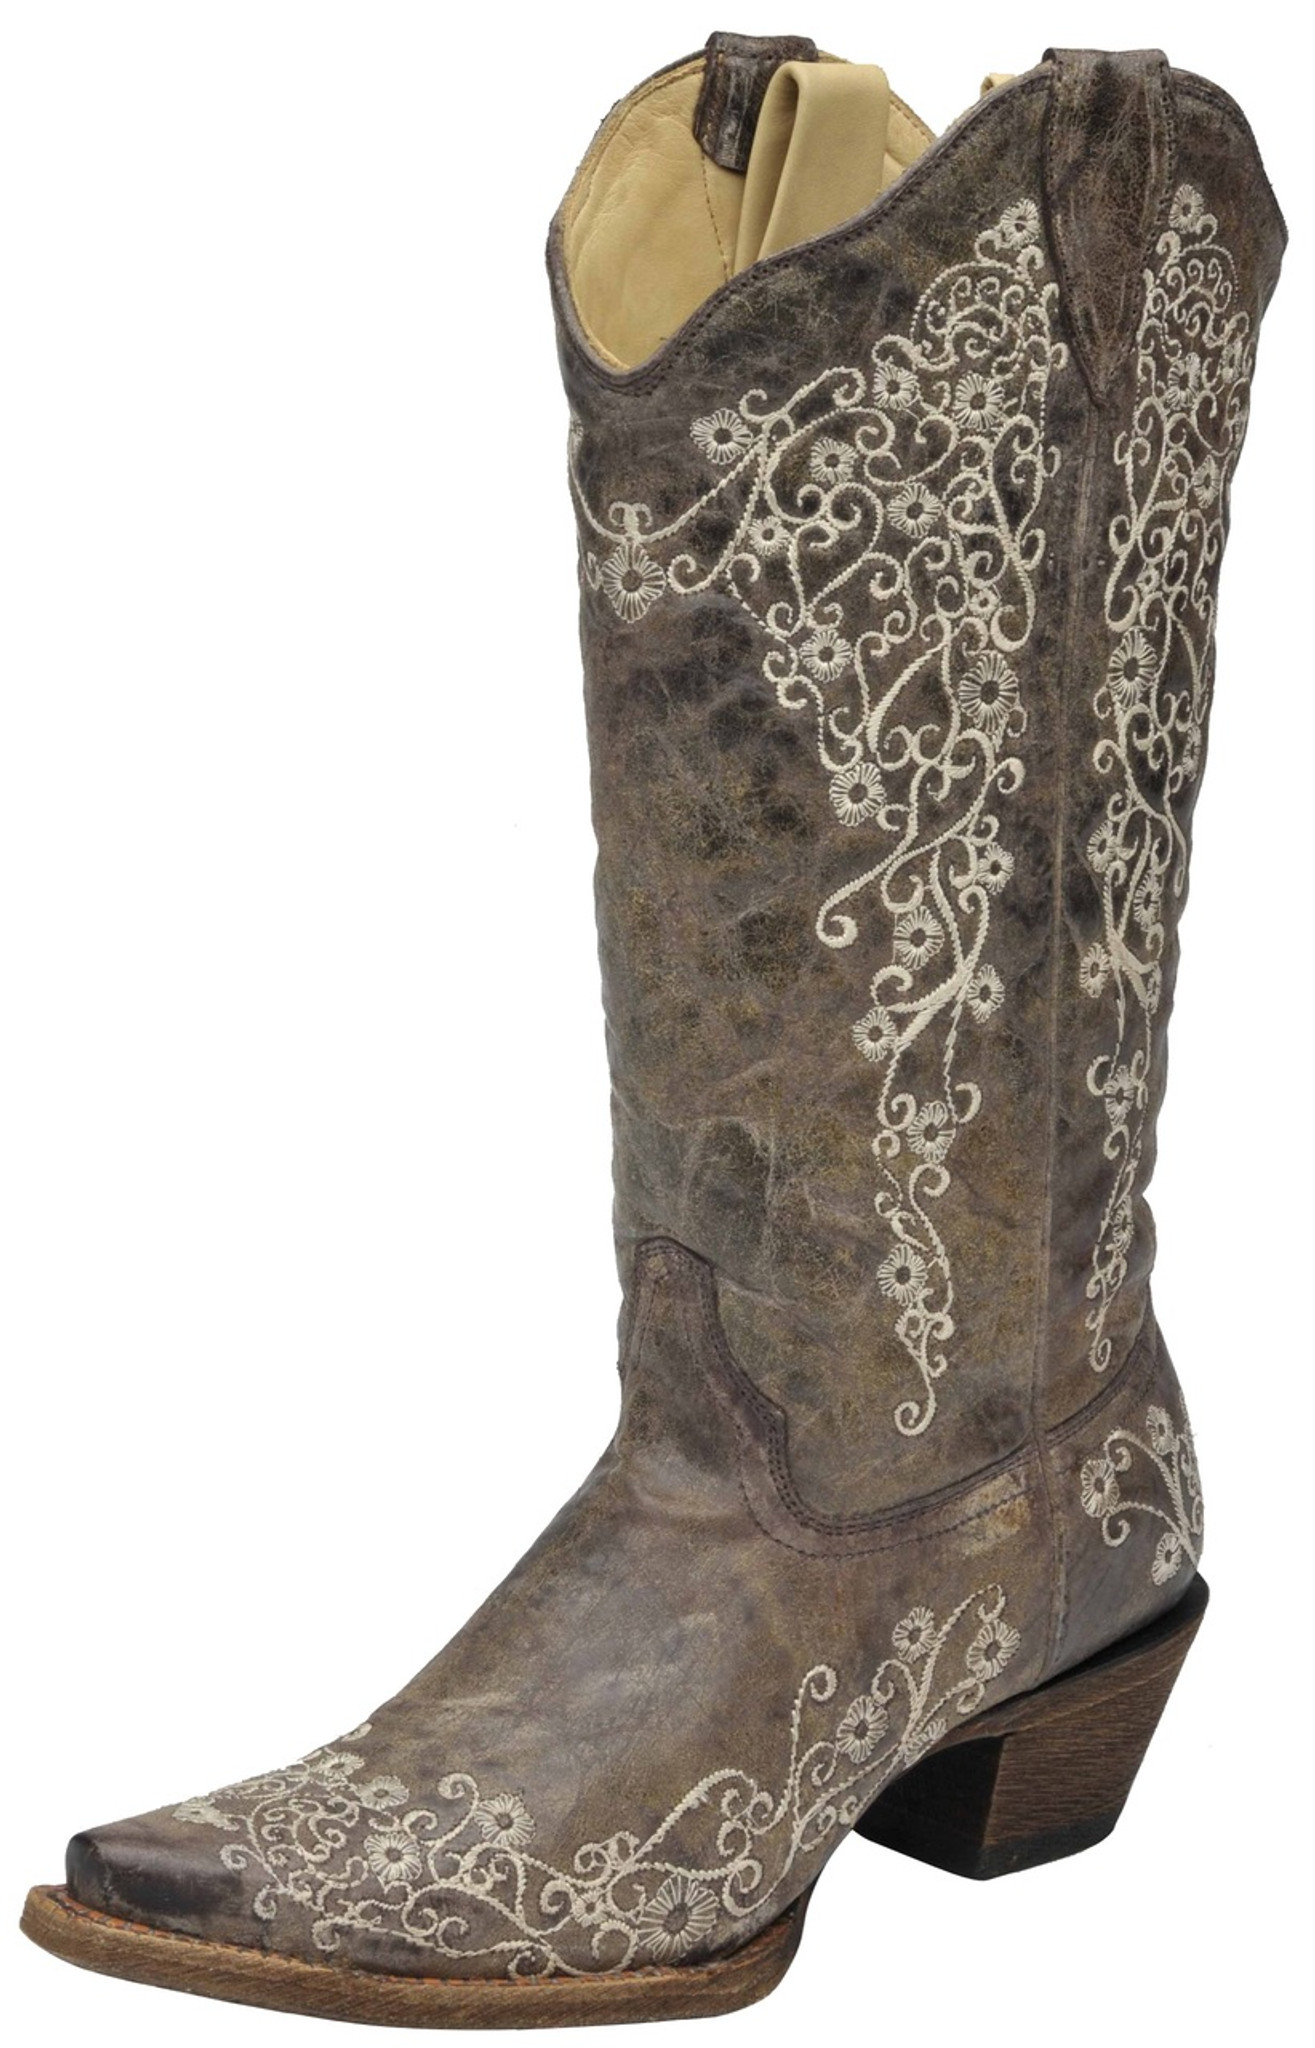 9605dd1954a Women's Corral Boot, Brown with White Embroidery